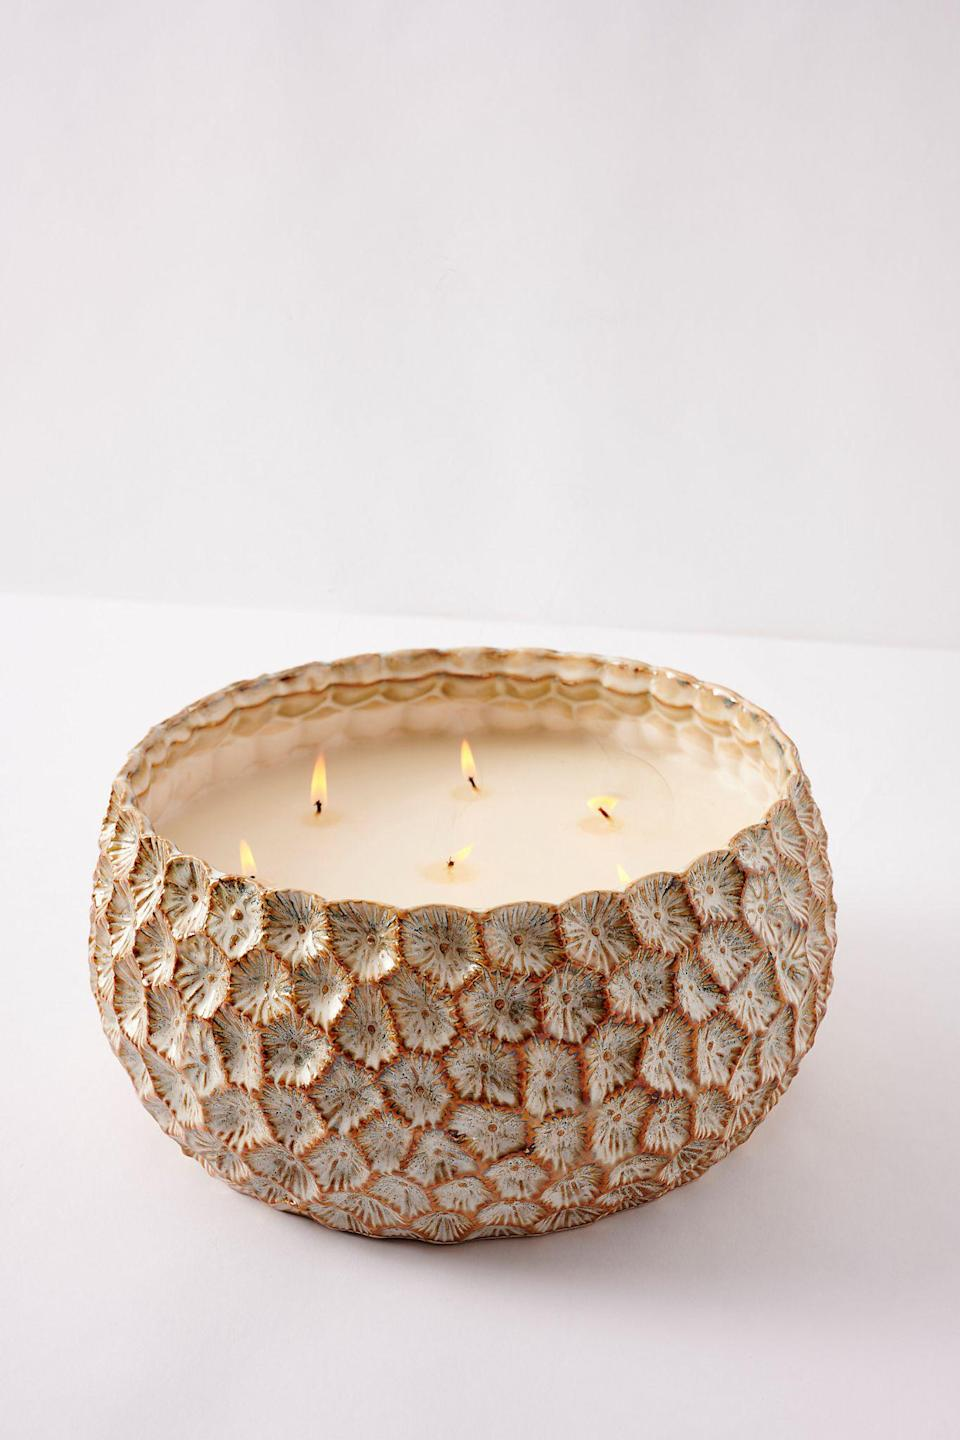 """<br><br><strong>Anthropologie</strong> Honeycomb Textured Glass Candle, $, available at <a href=""""https://go.skimresources.com/?id=30283X879131&url=https%3A%2F%2Fwww.anthropologie.com%2Fshop%2Fhoneycomb-textured-glass-candle"""" rel=""""nofollow noopener"""" target=""""_blank"""" data-ylk=""""slk:Anthropologie"""" class=""""link rapid-noclick-resp"""">Anthropologie</a>"""